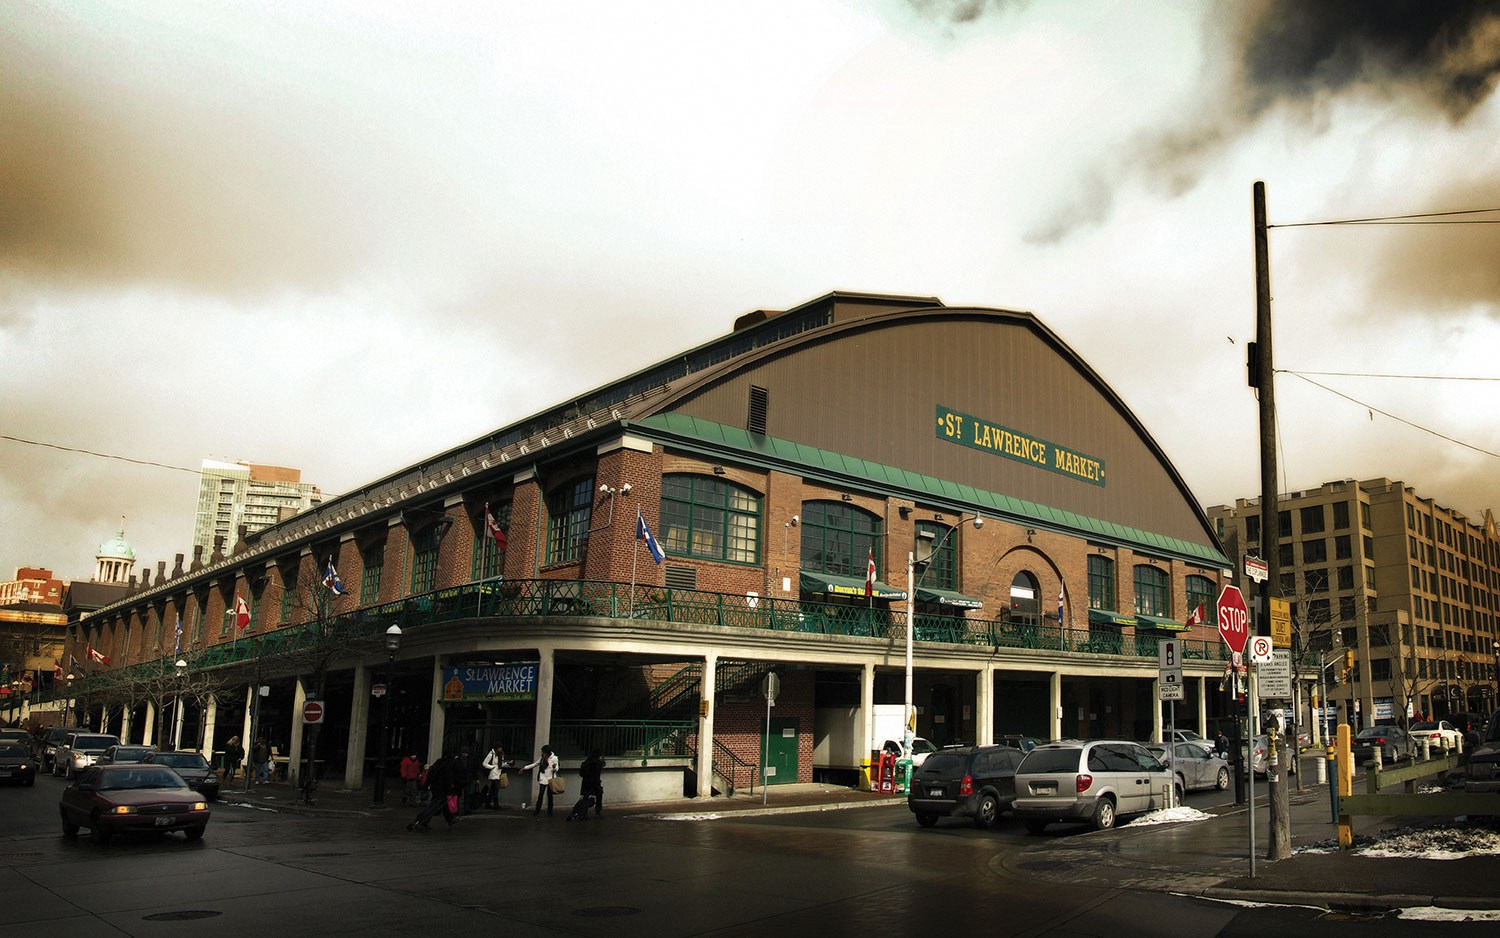 Toronto's St. Lawrence Market was recently named by National Geographic as the number one food market in the world. (Photo from Flickr: Keith Attard)